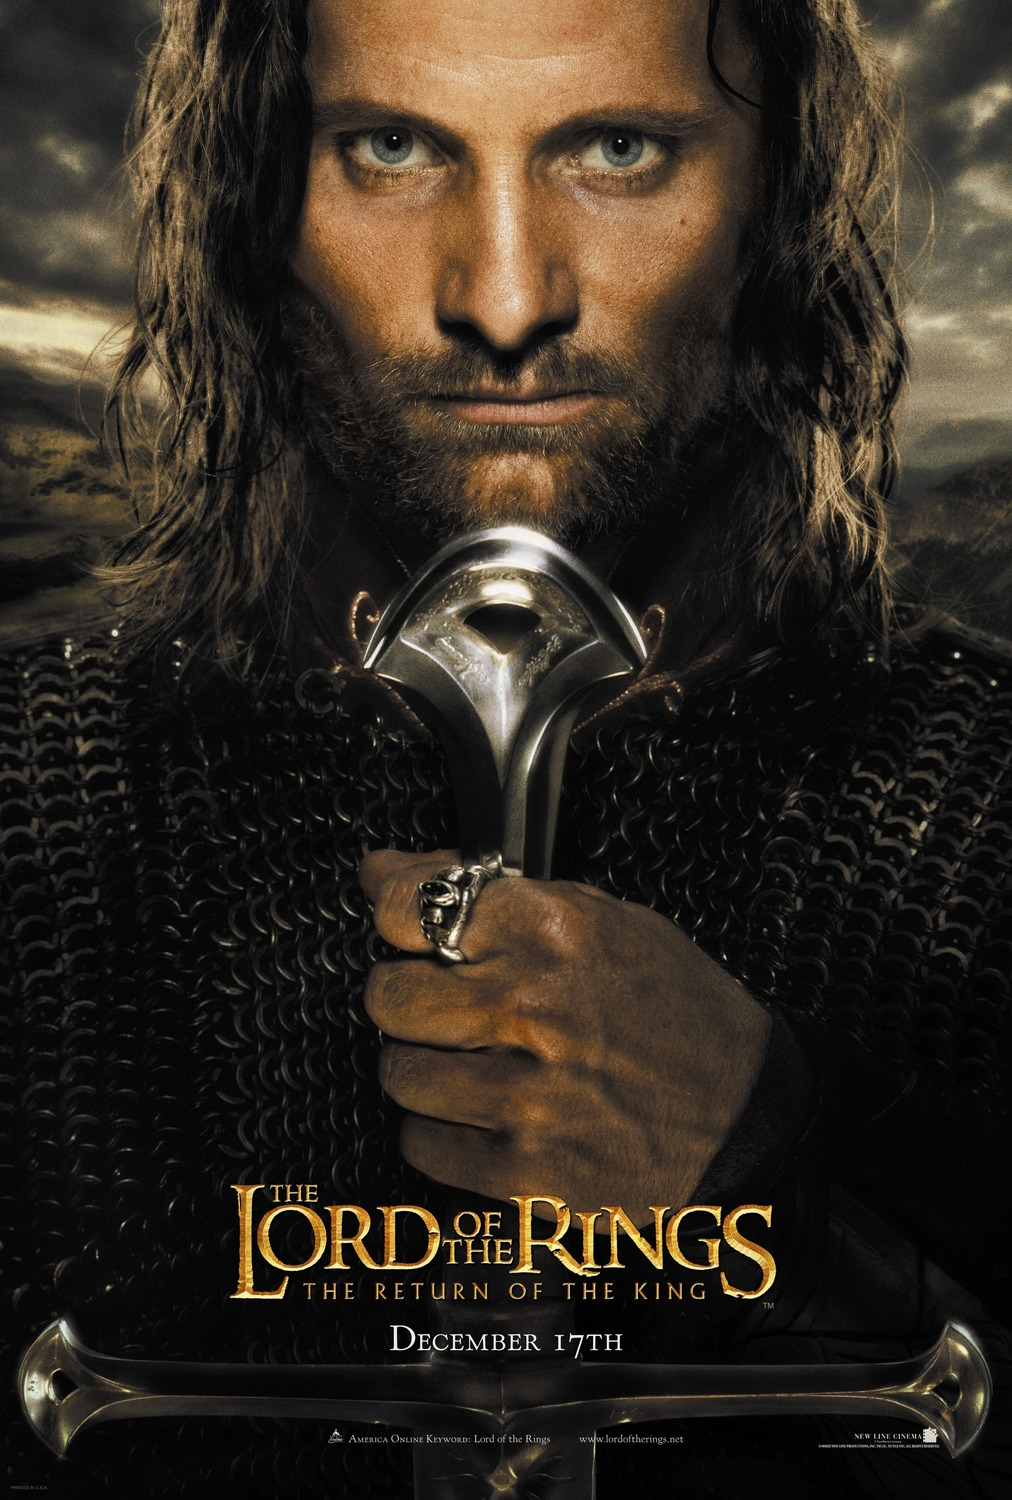 Extra Large Movie Poster Image for The Lord of the Rings: The Return of the King